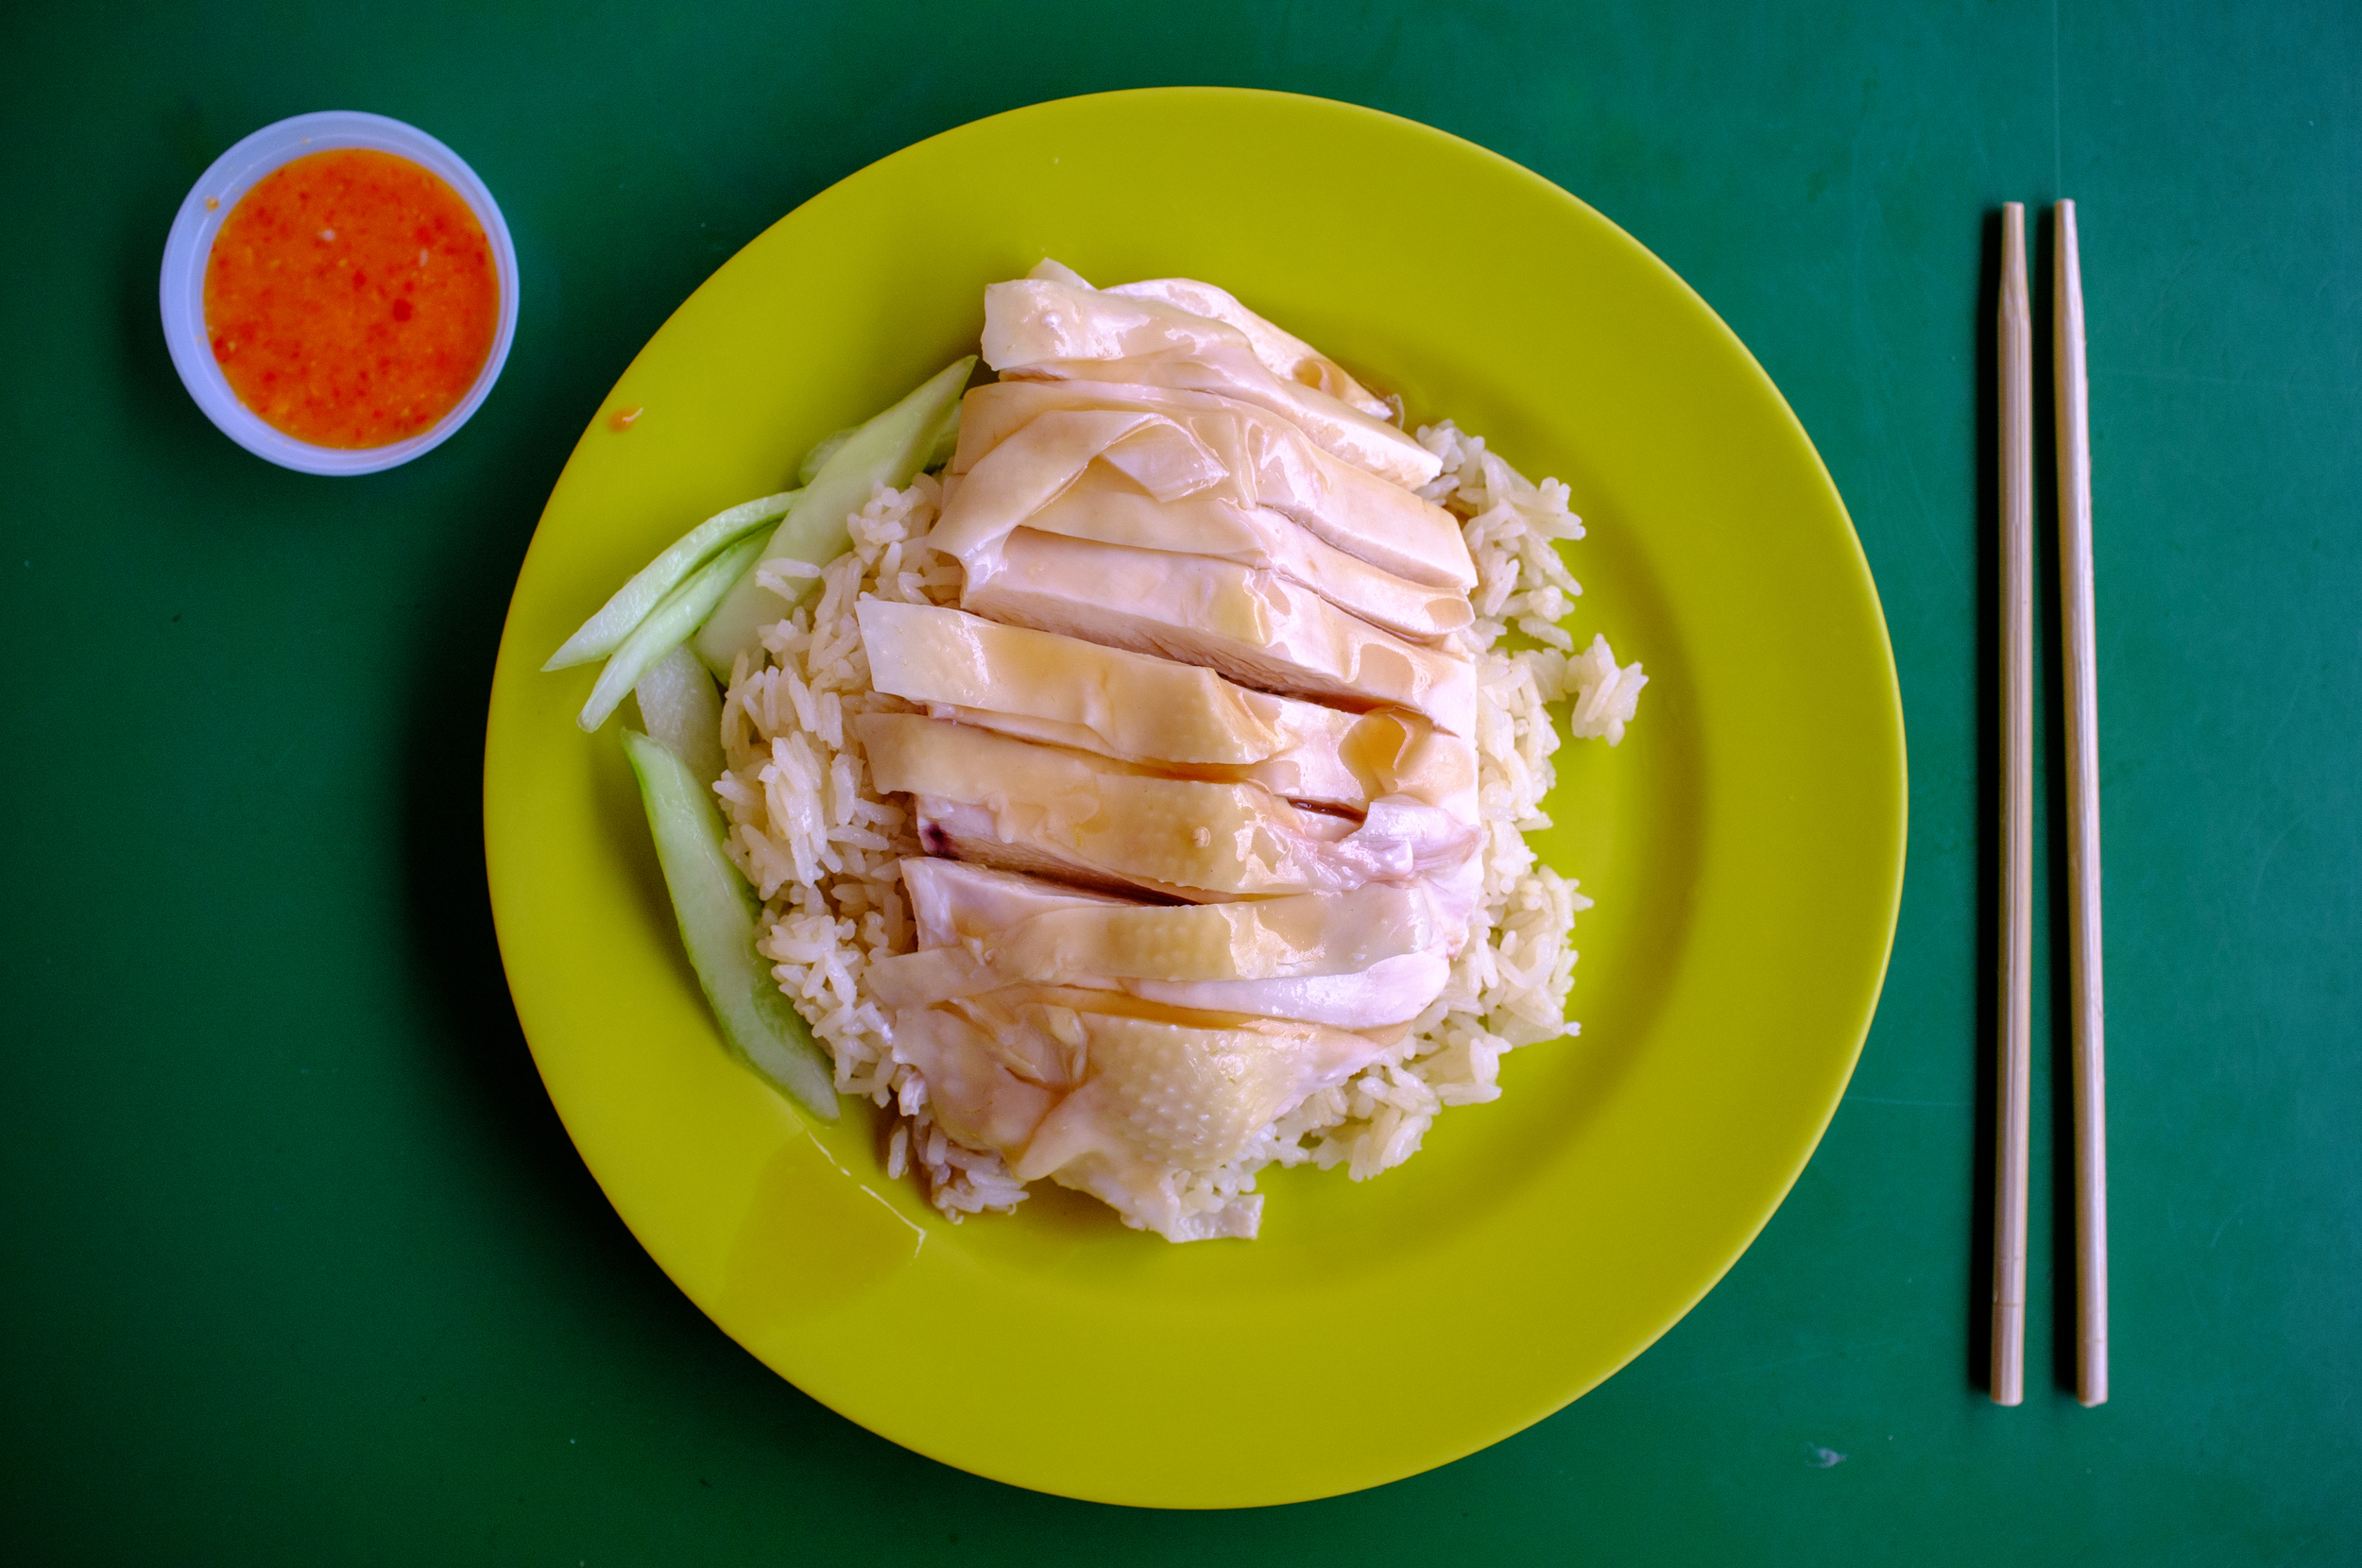 Hainanese Chicken Rice at Maxwell Road Hawker Centre